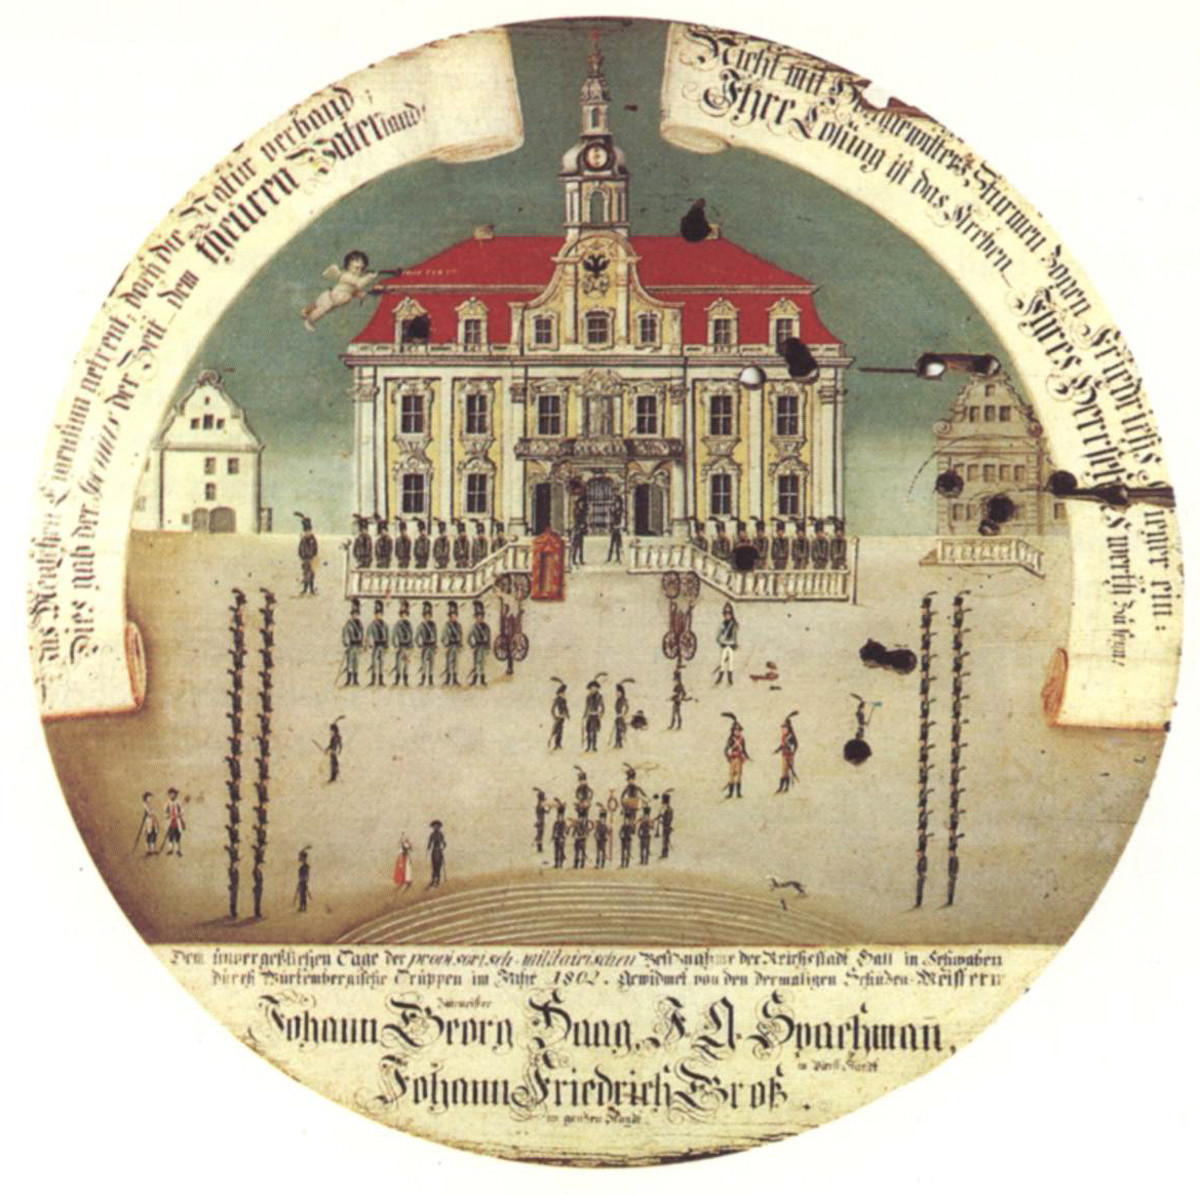 The 1802 mediatization of Hall in contemporary imagery, Schwabisch Hall is where the novel takes place.